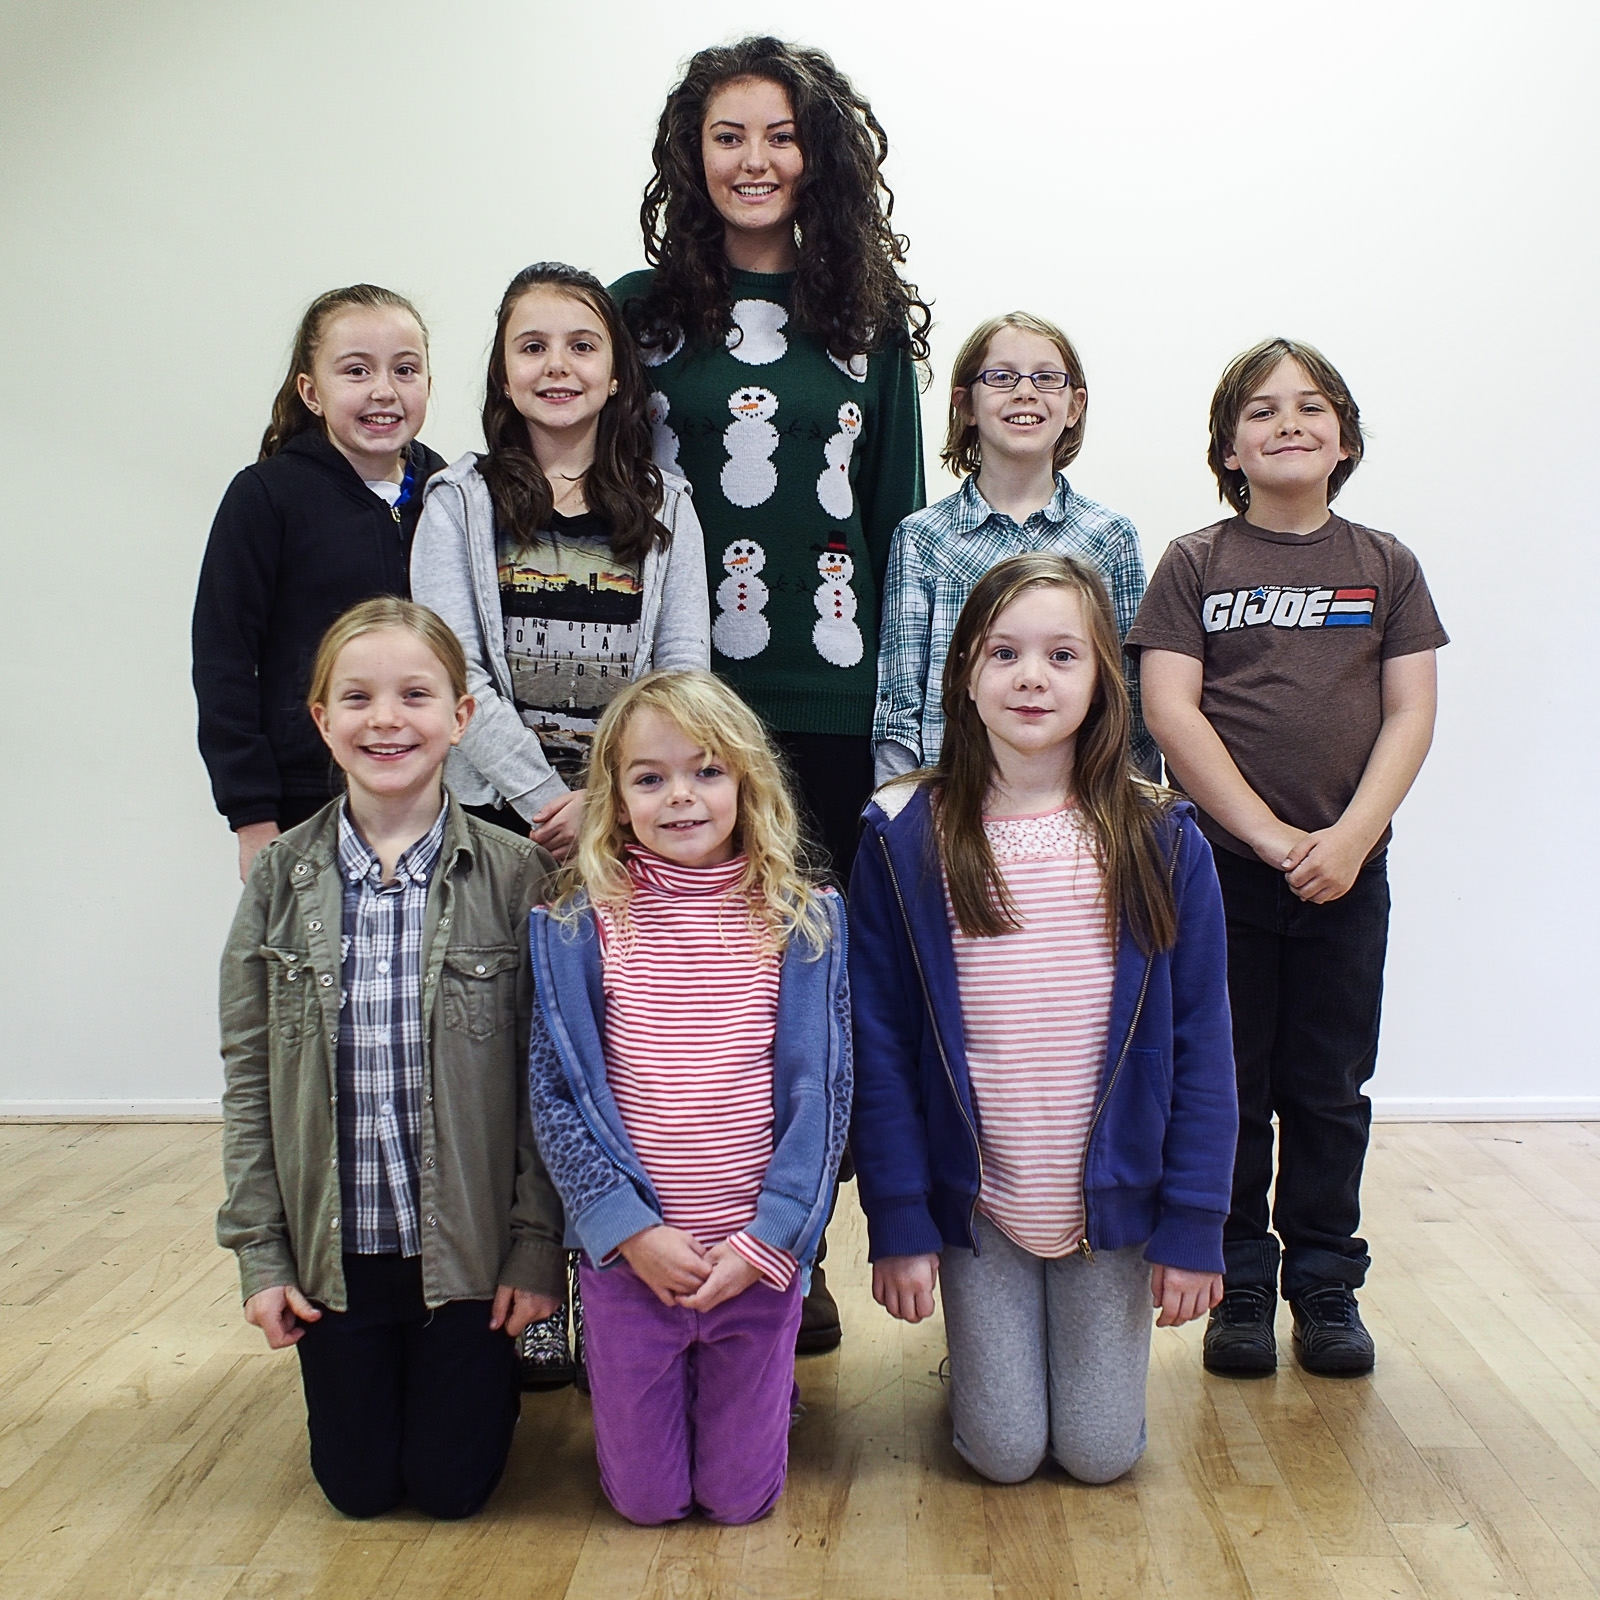 Charlotte Coles, centre, who will be playing Snow White, with her seven dwarfs.